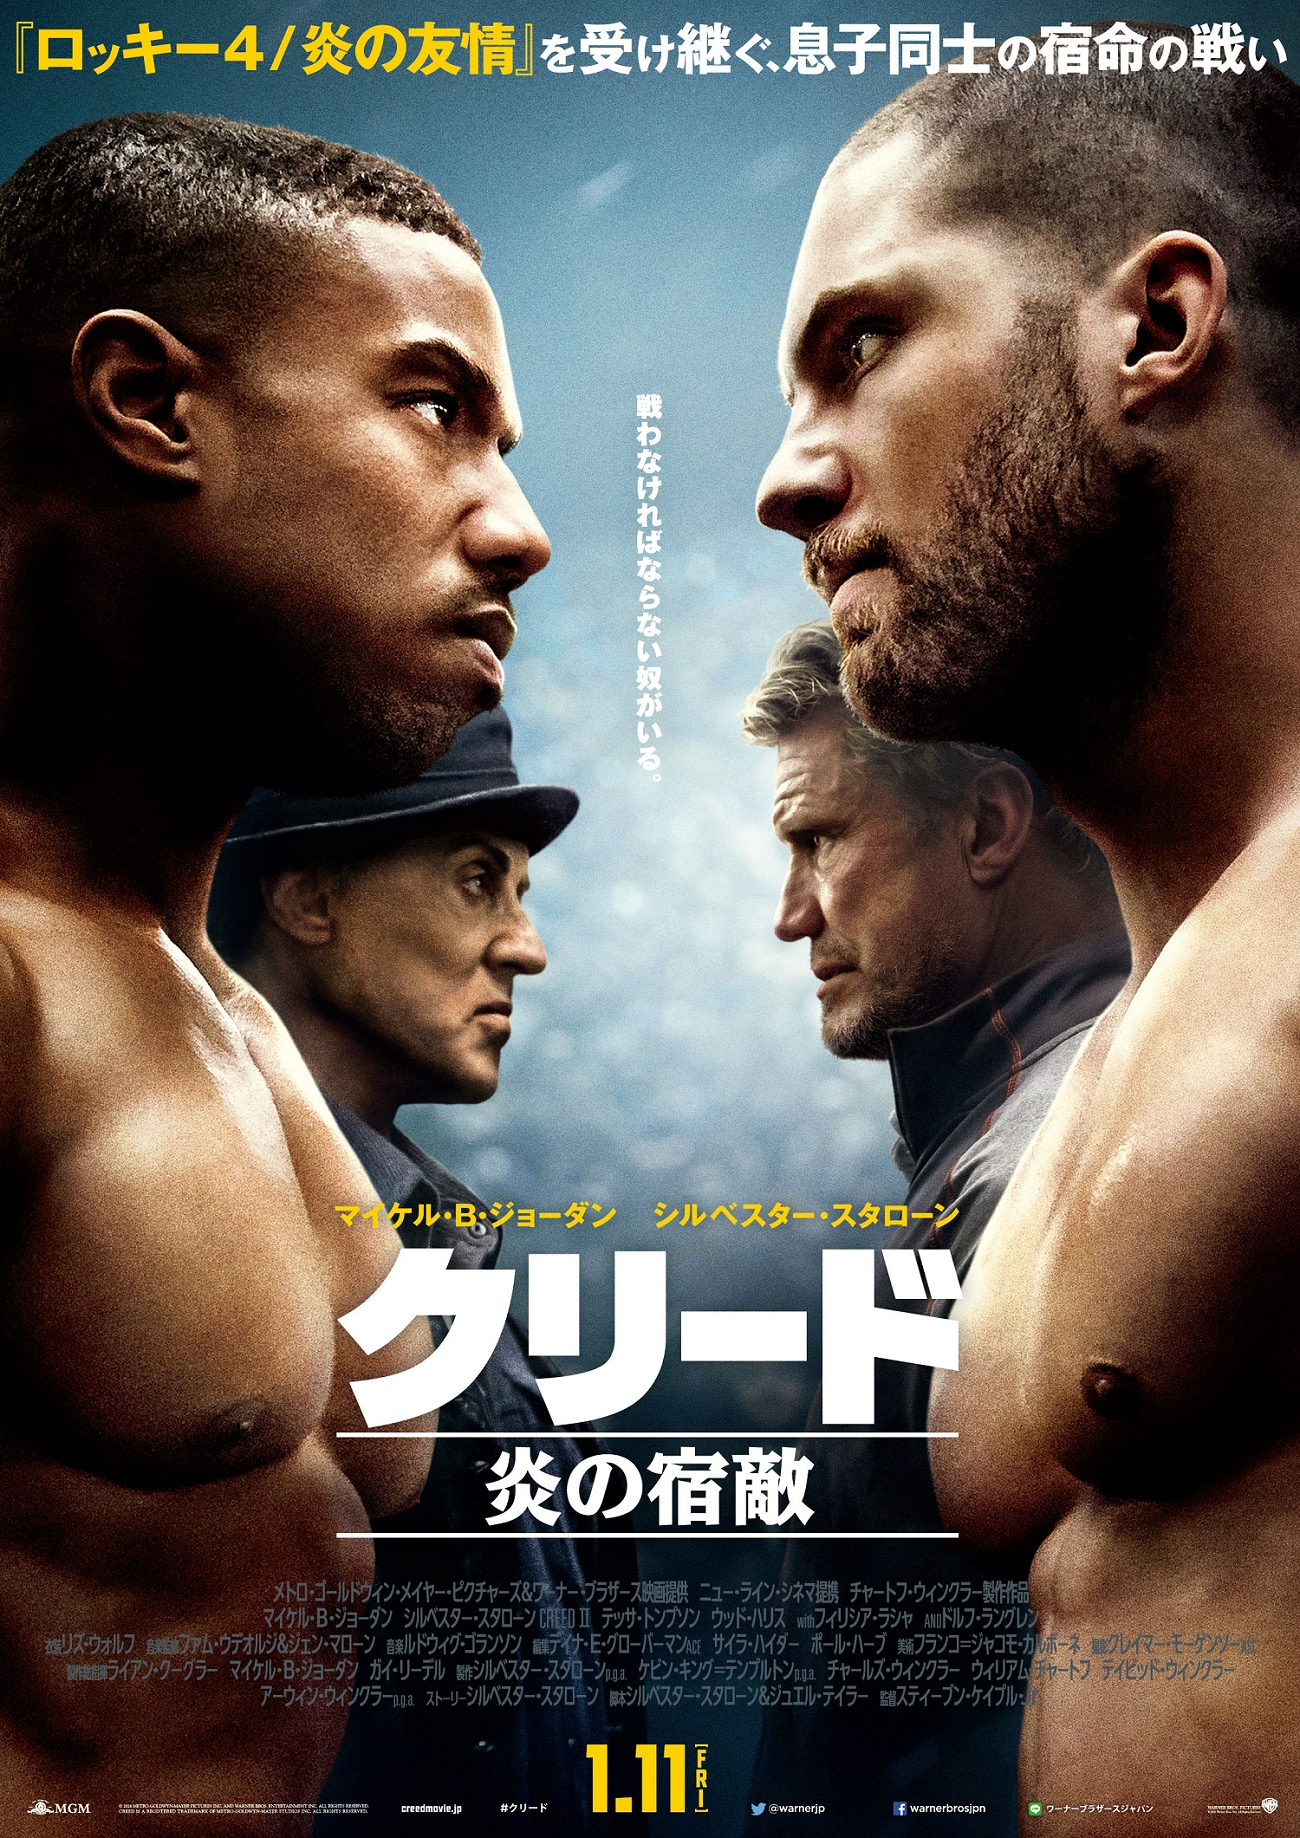 wb_creed2_JP_MainPoster.jpg